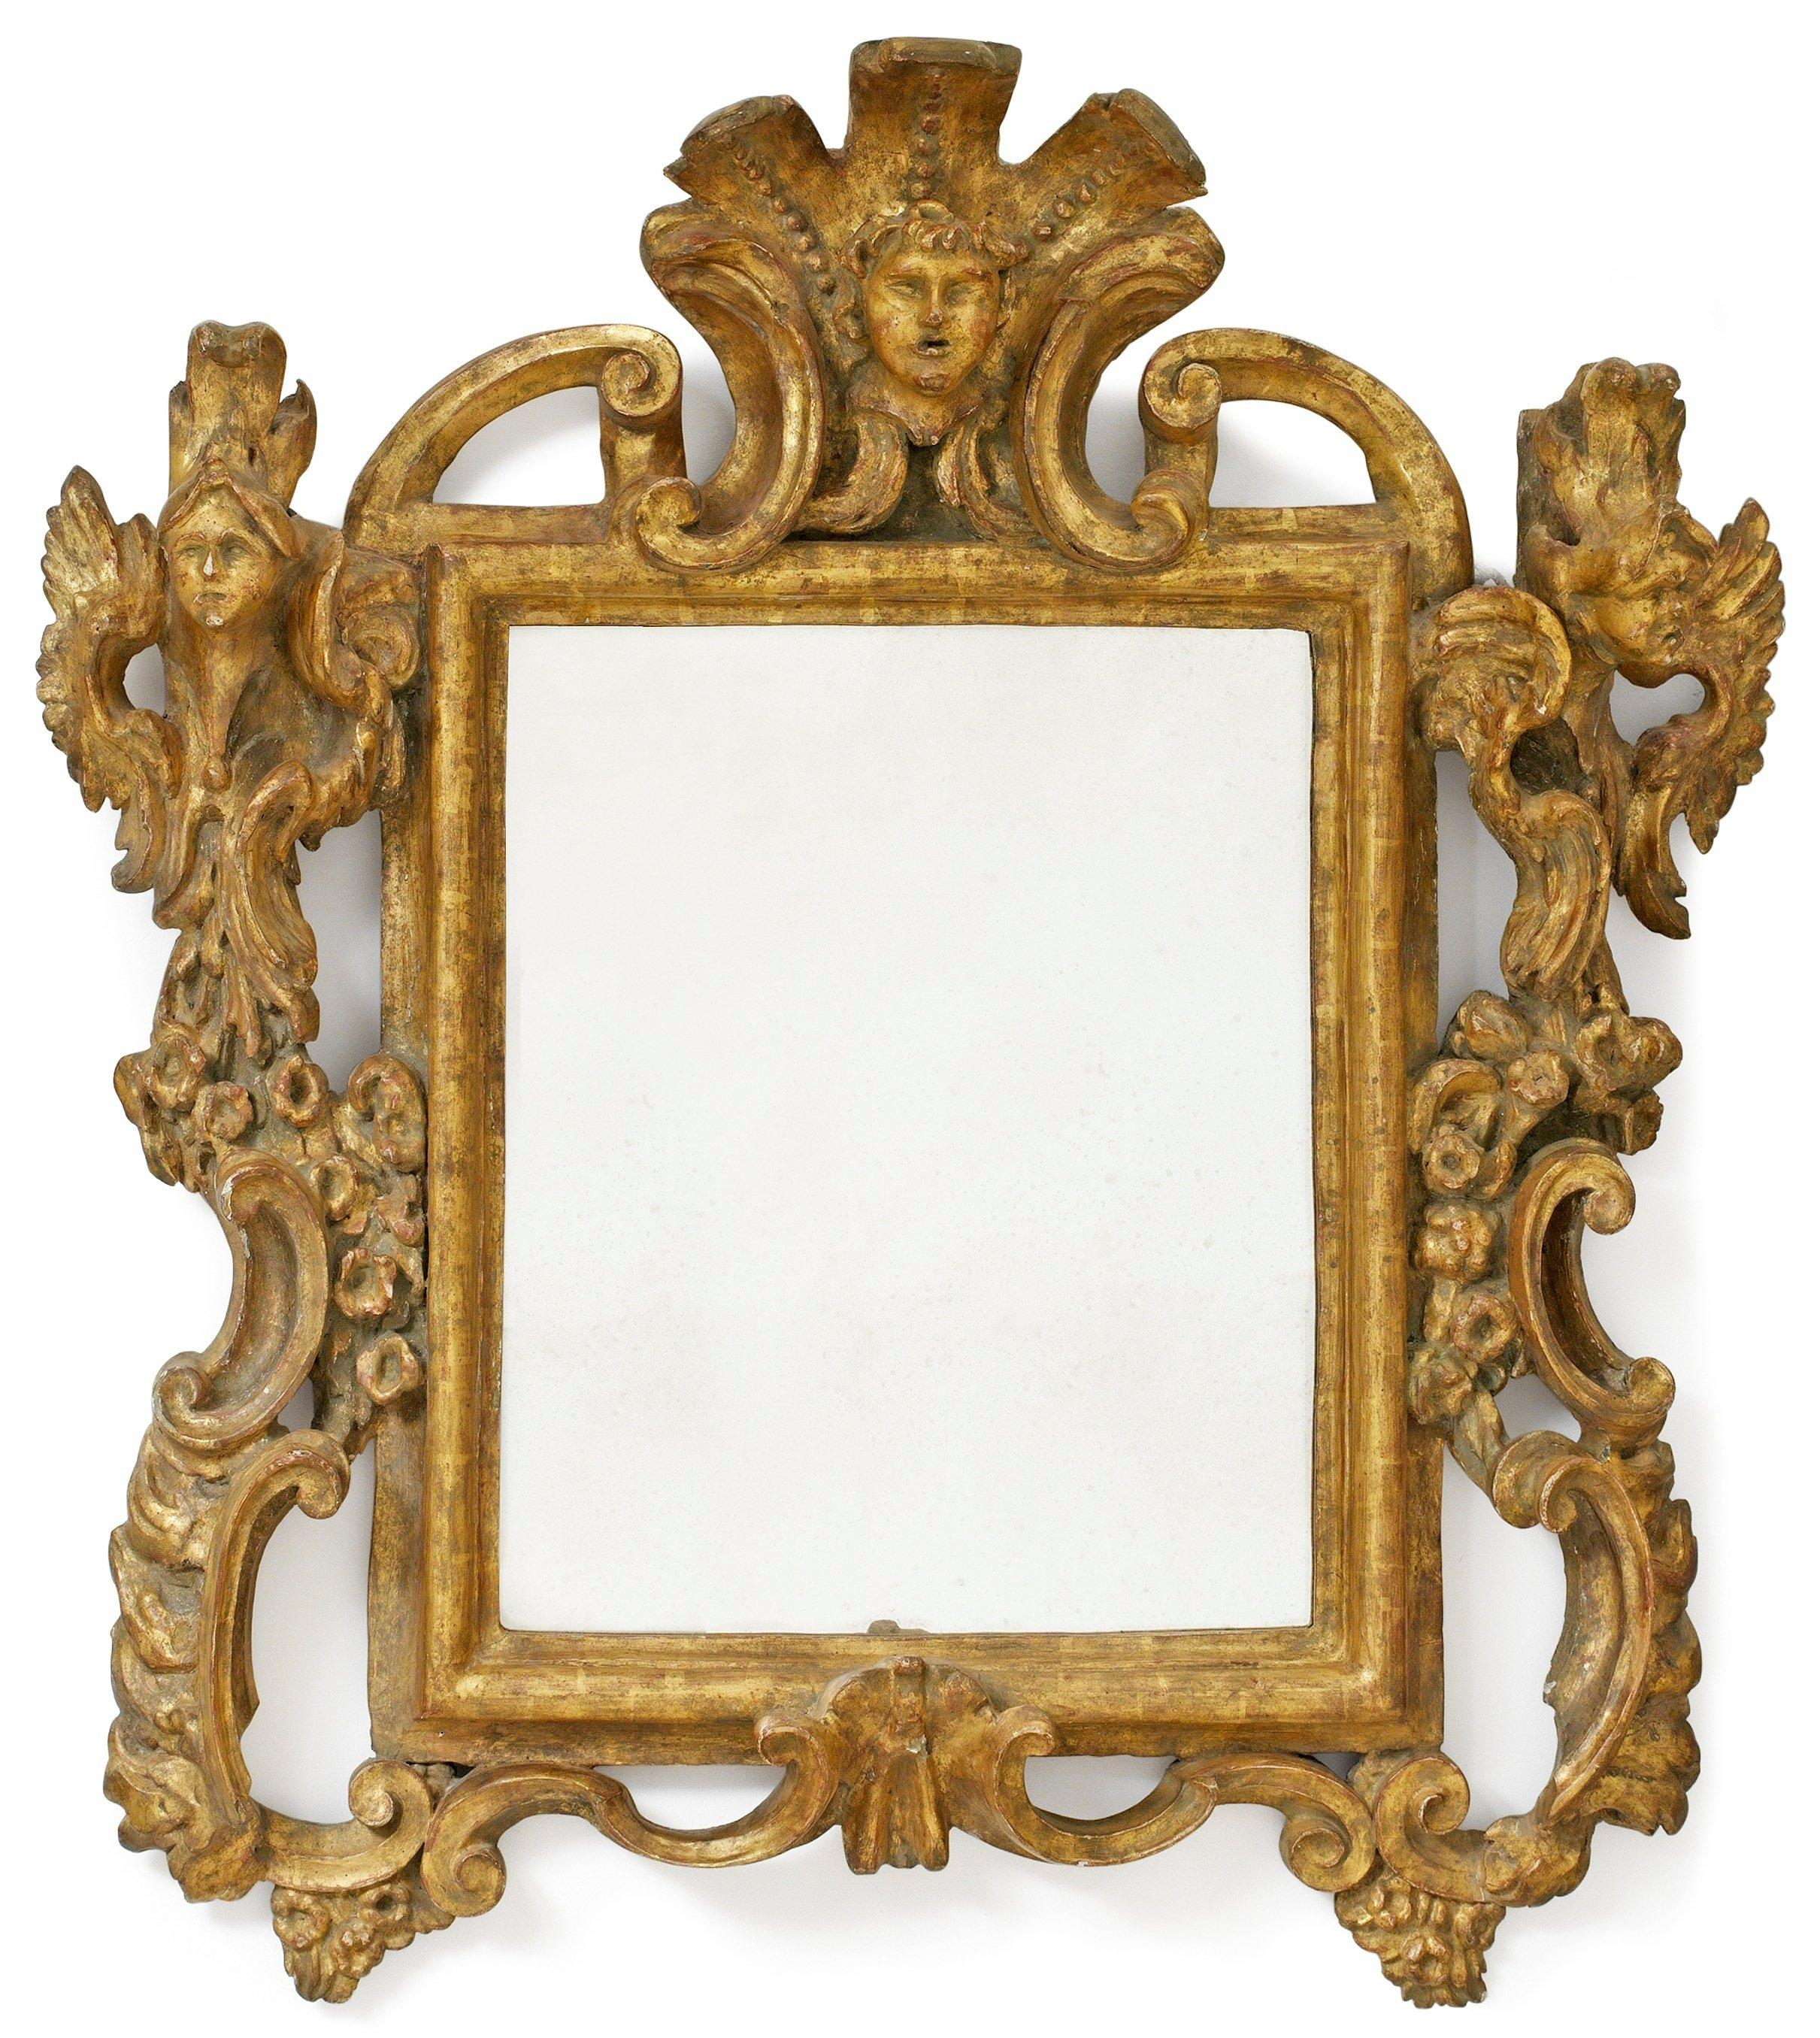 Bathroom: Astounding Baroque Mirror With Unique Frame For Bathroom In Large Baroque Mirror (Image 4 of 20)